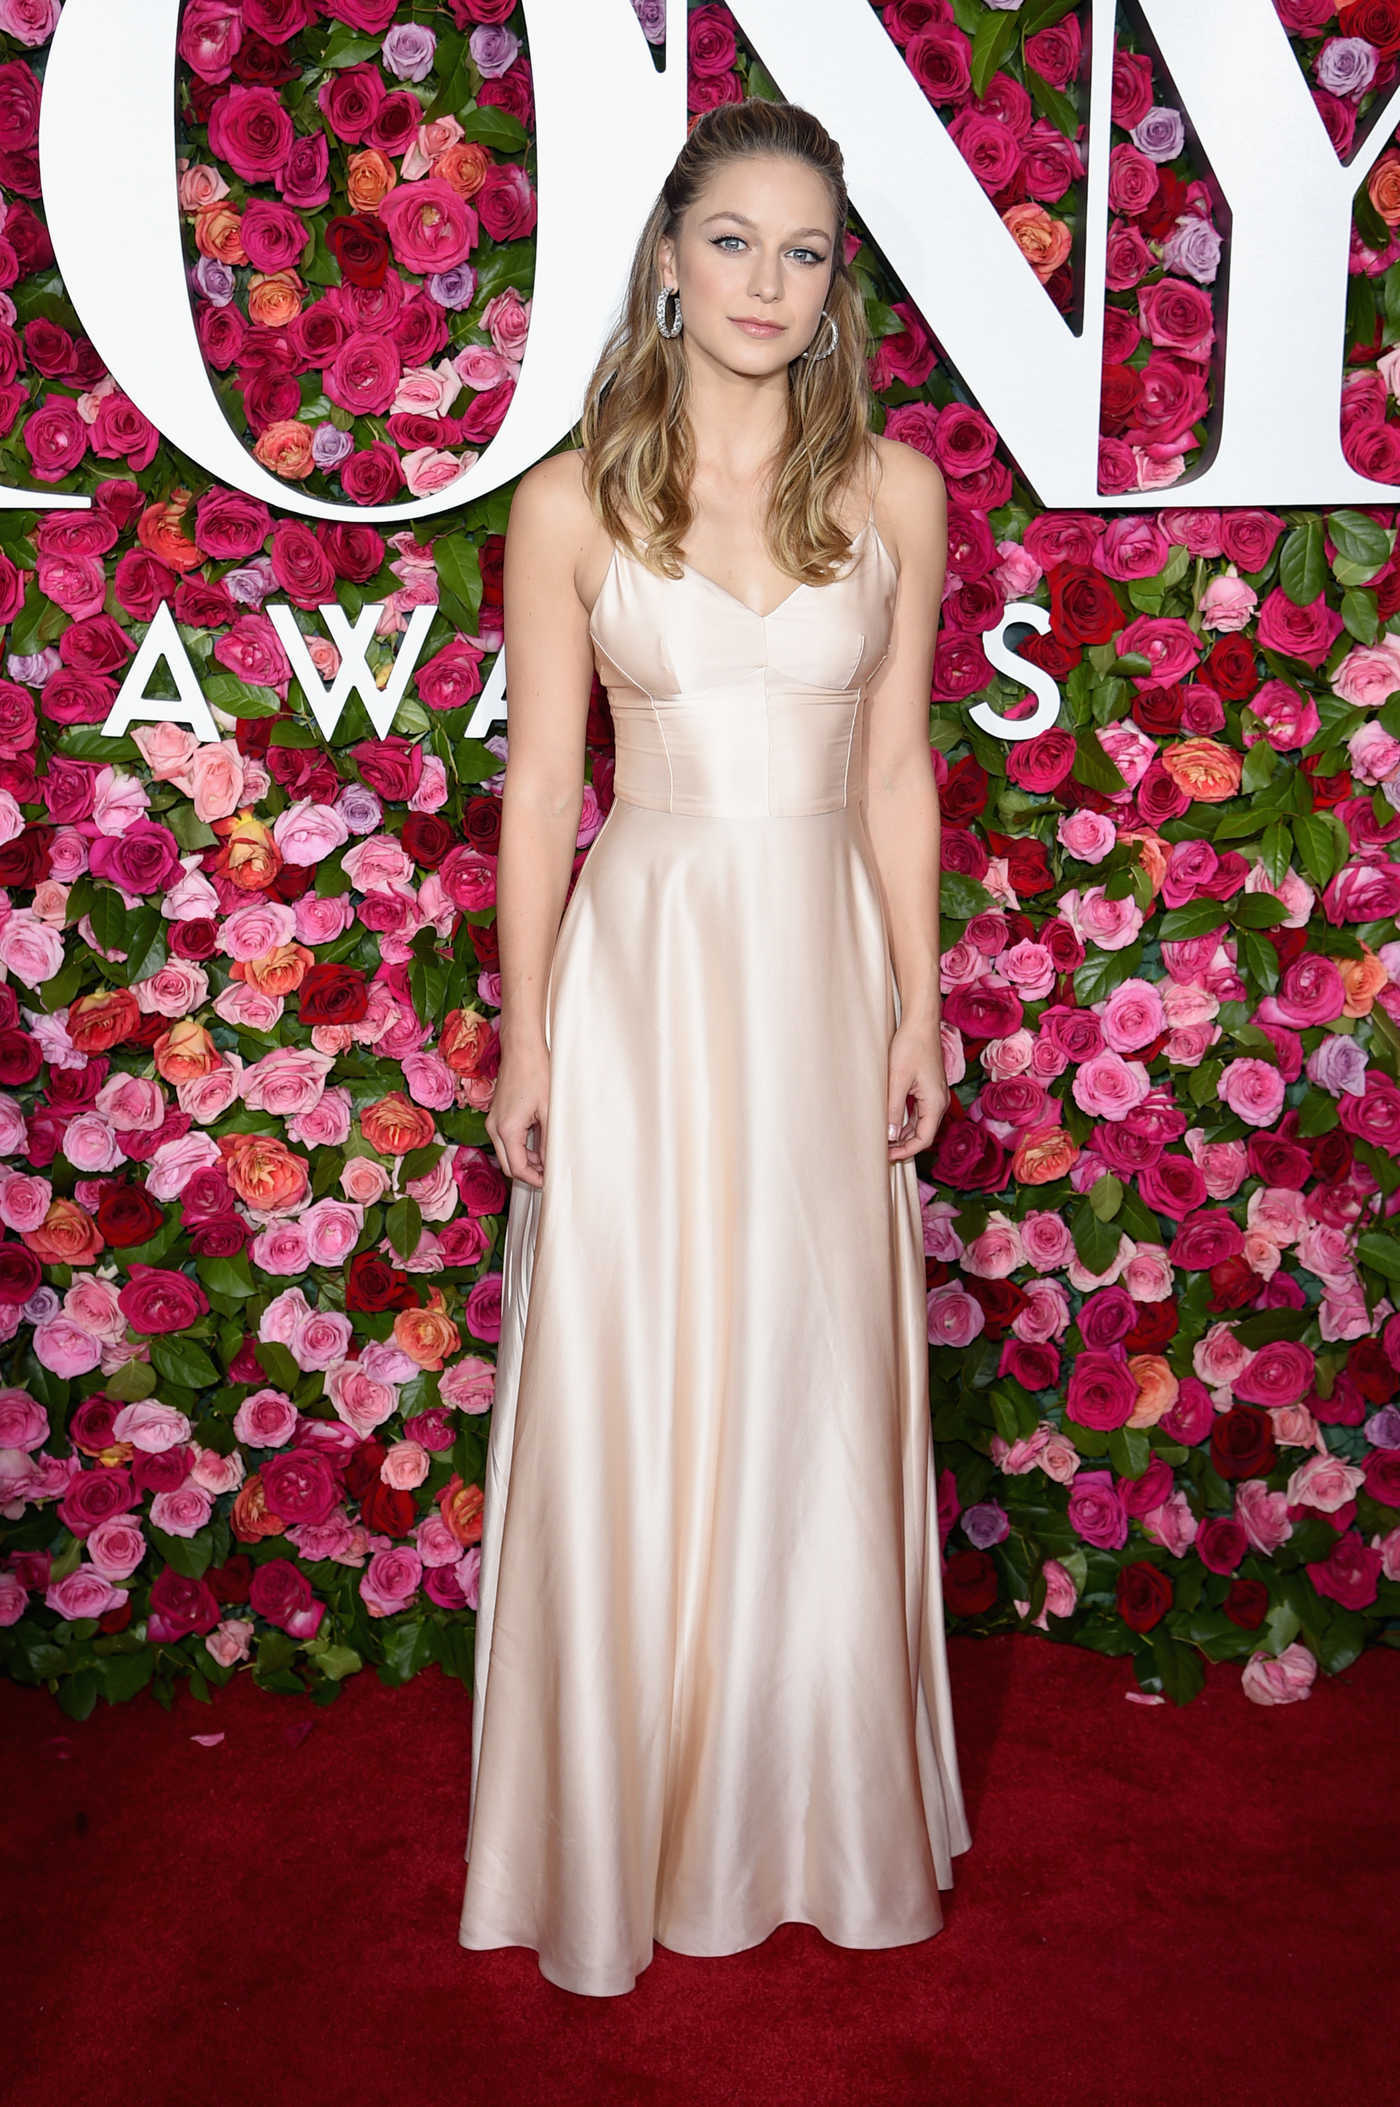 Melissa Benoist at the 72nd Annual Tony Awards in New York City 06/10/2018